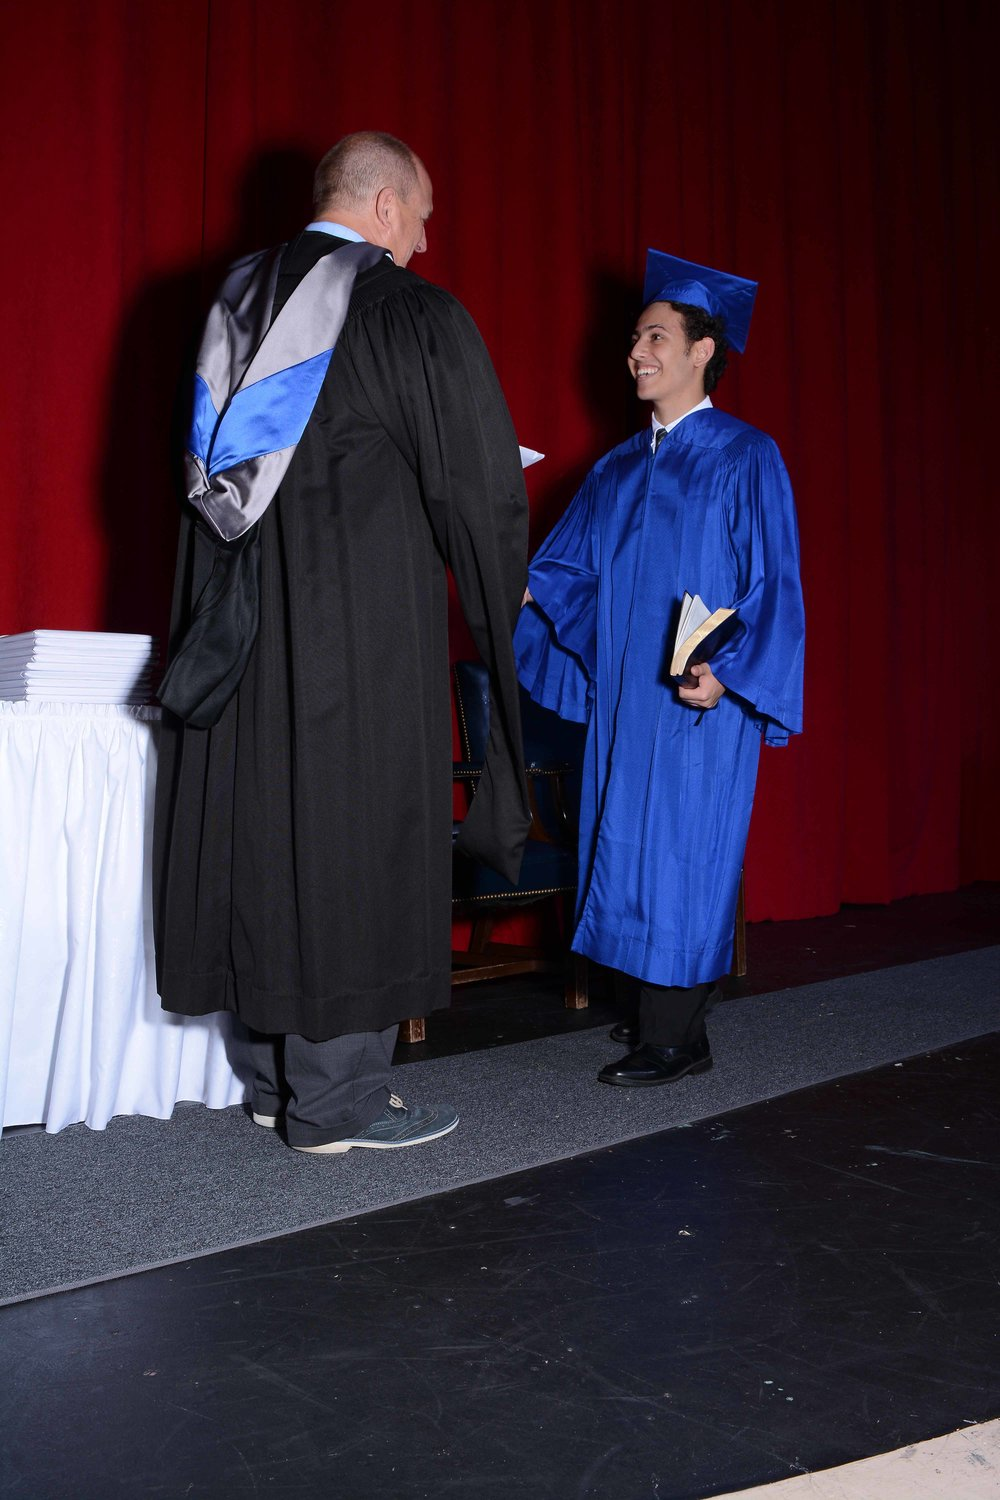 May14 Commencement45.jpg